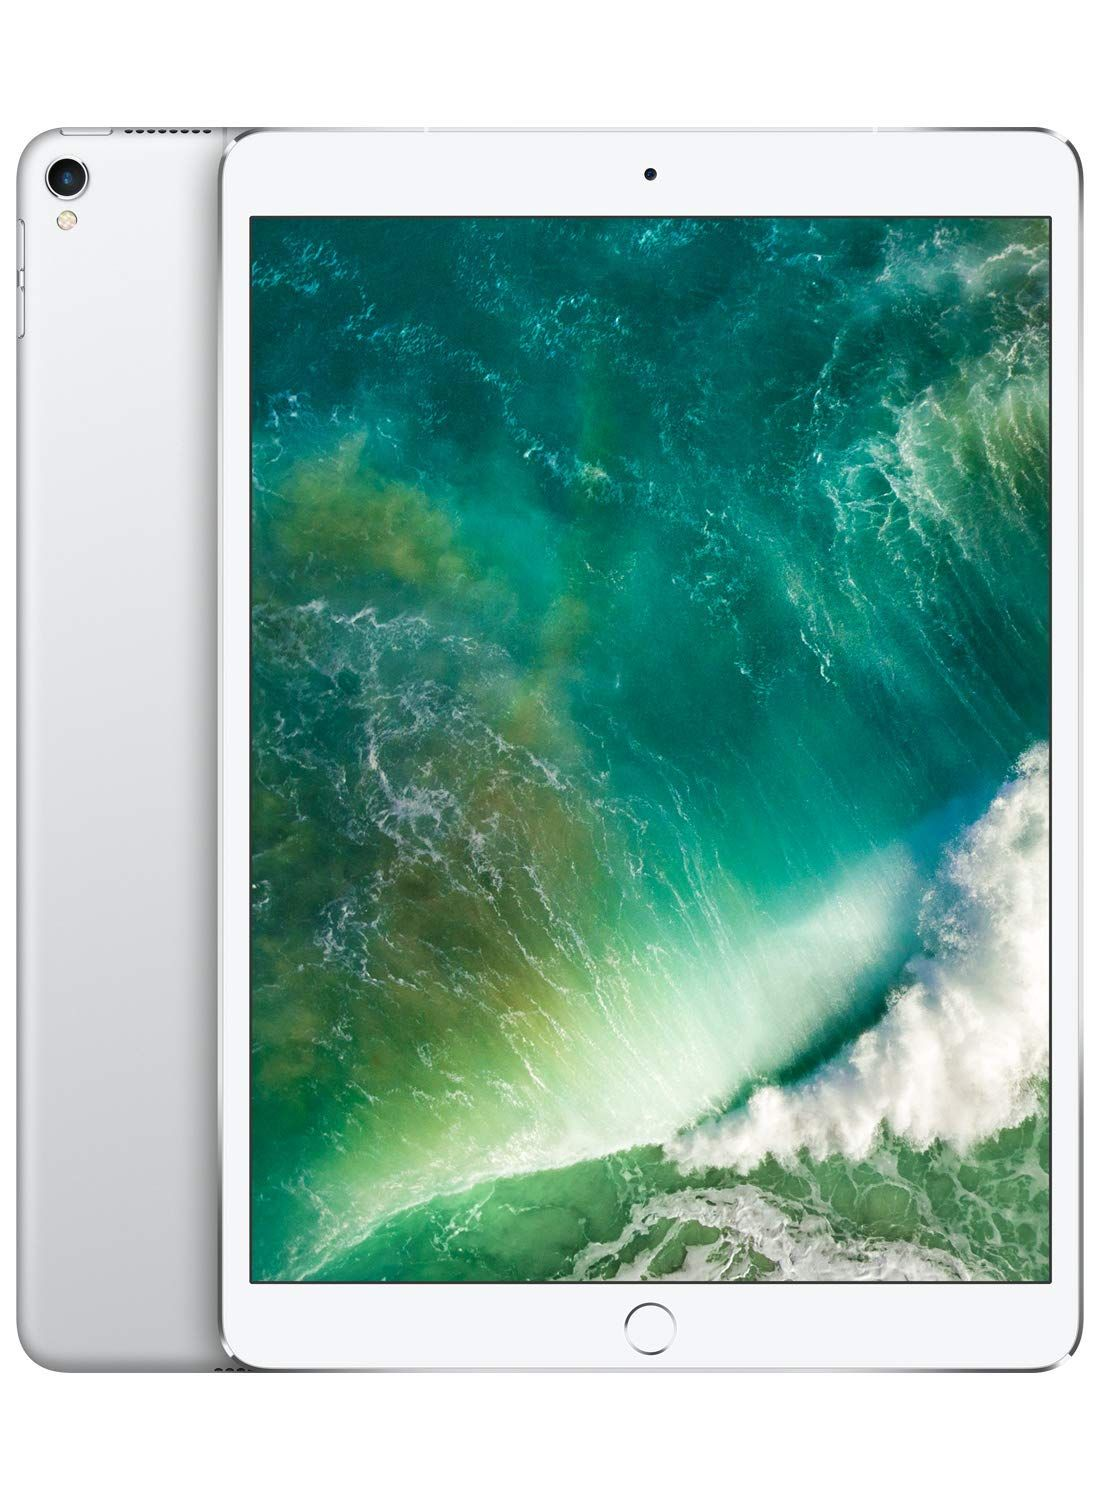 10 5 Inch Retina Display With Promotion True Tone And Wide Color A10x Fusion Chip Touch Id Fingerprint Sensor 12 Apple Ipad Pro Ipad Pro Apple Ipad